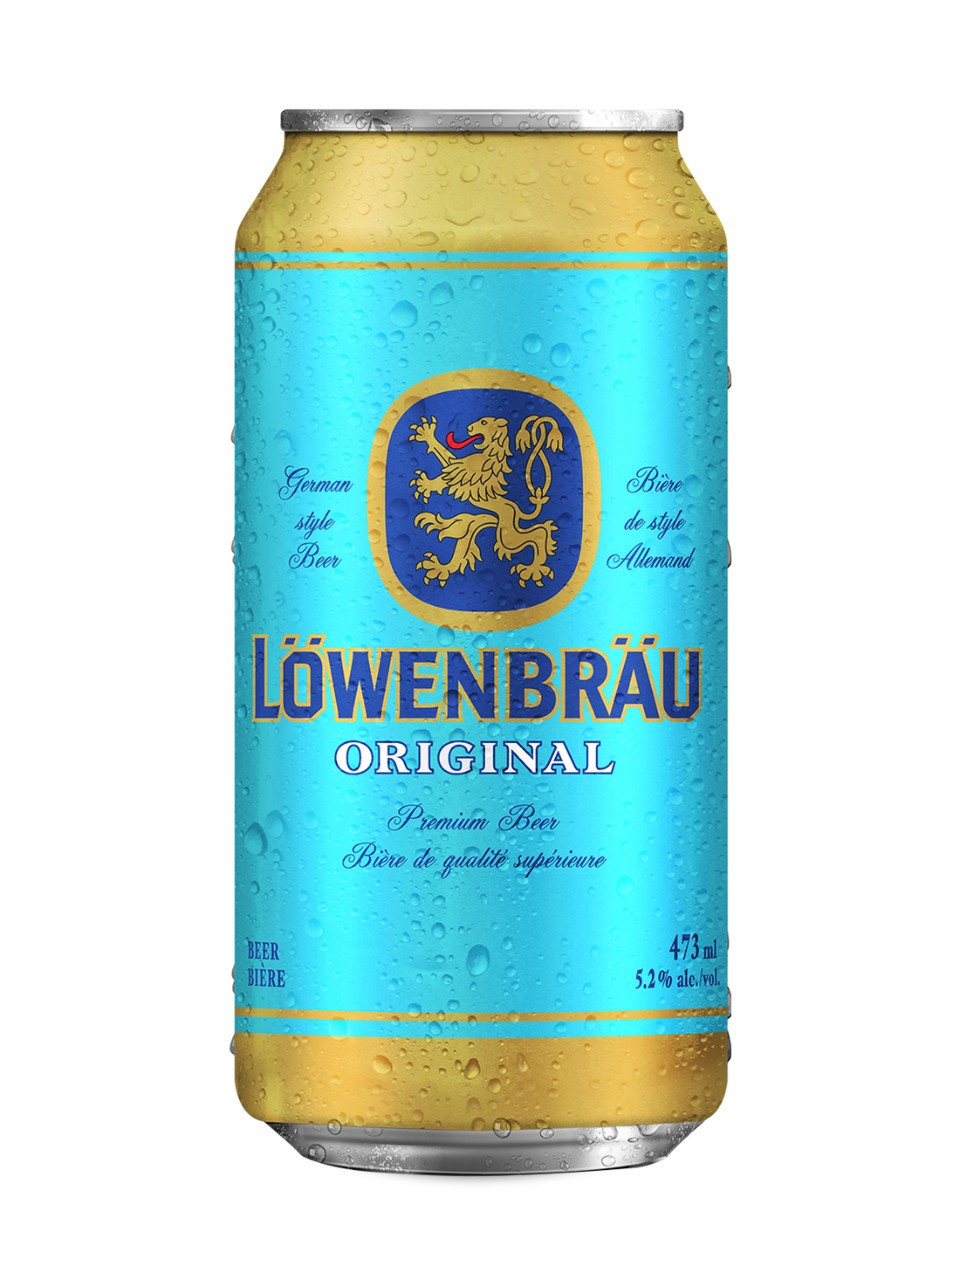 Image for Lowenbrau Original from LCBO